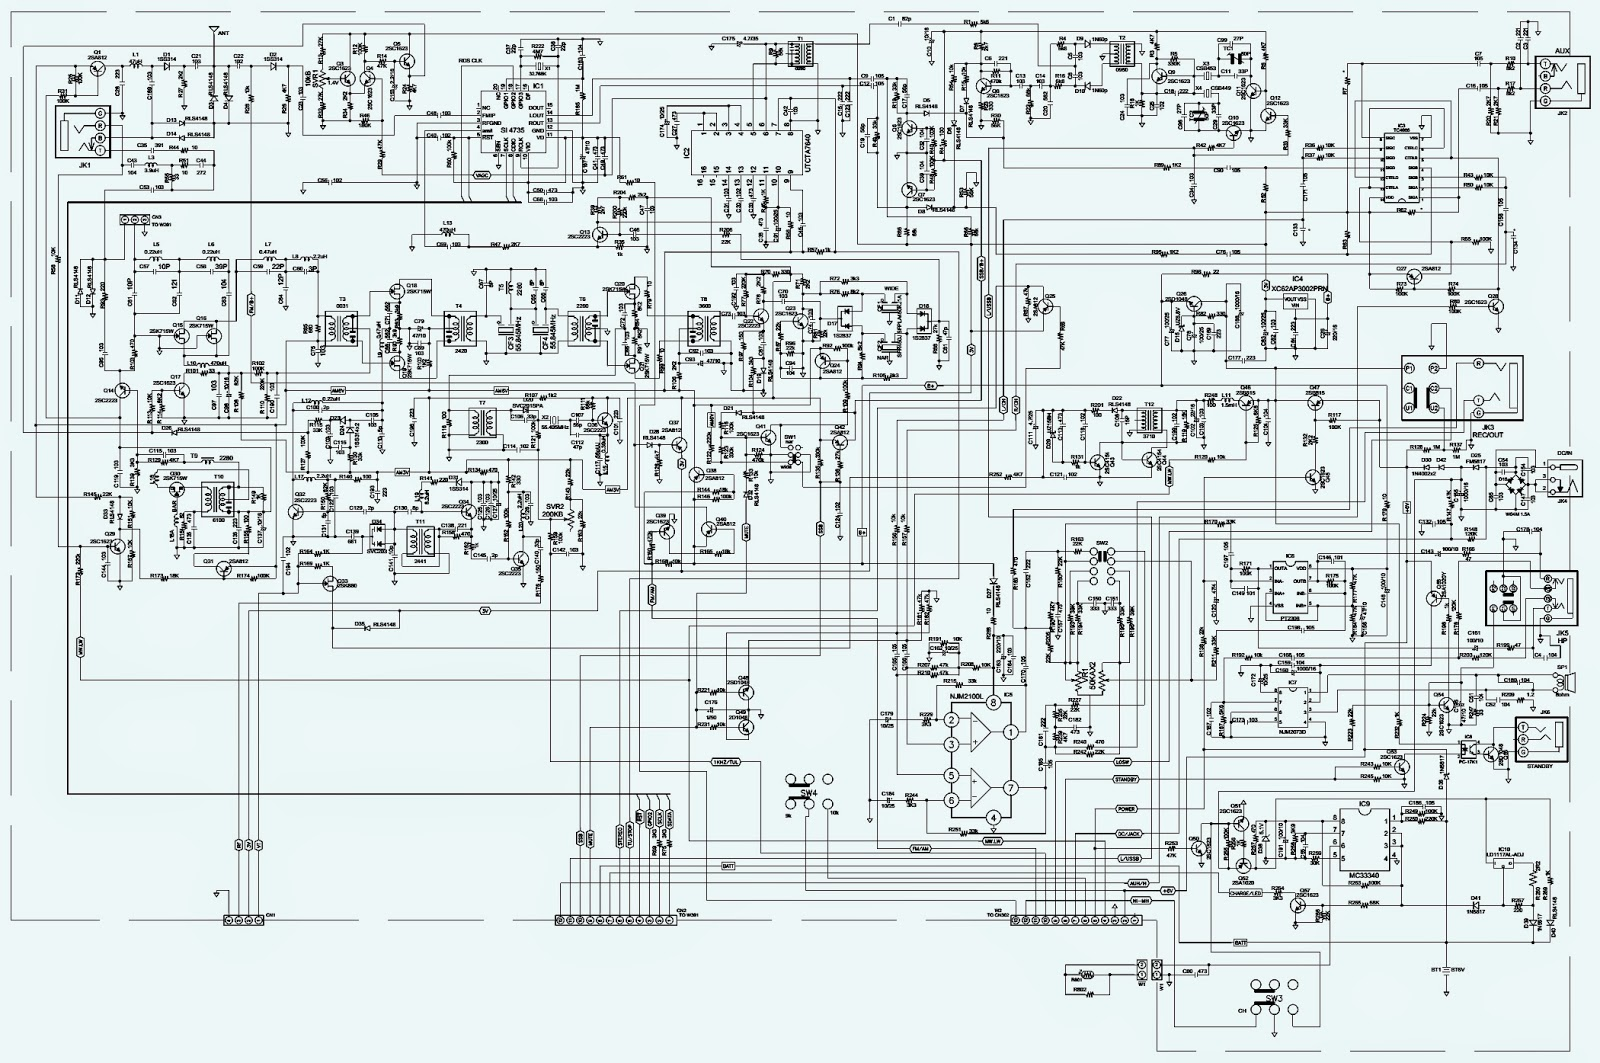 Tecsun380 together with 27mhz Transmitter Receiver Radio also Philco 42 390 Wiring Diagram besides Sangean Ats 909x Schematic together with Astron 12   Power Supply Schematic. on sangean radio schematics